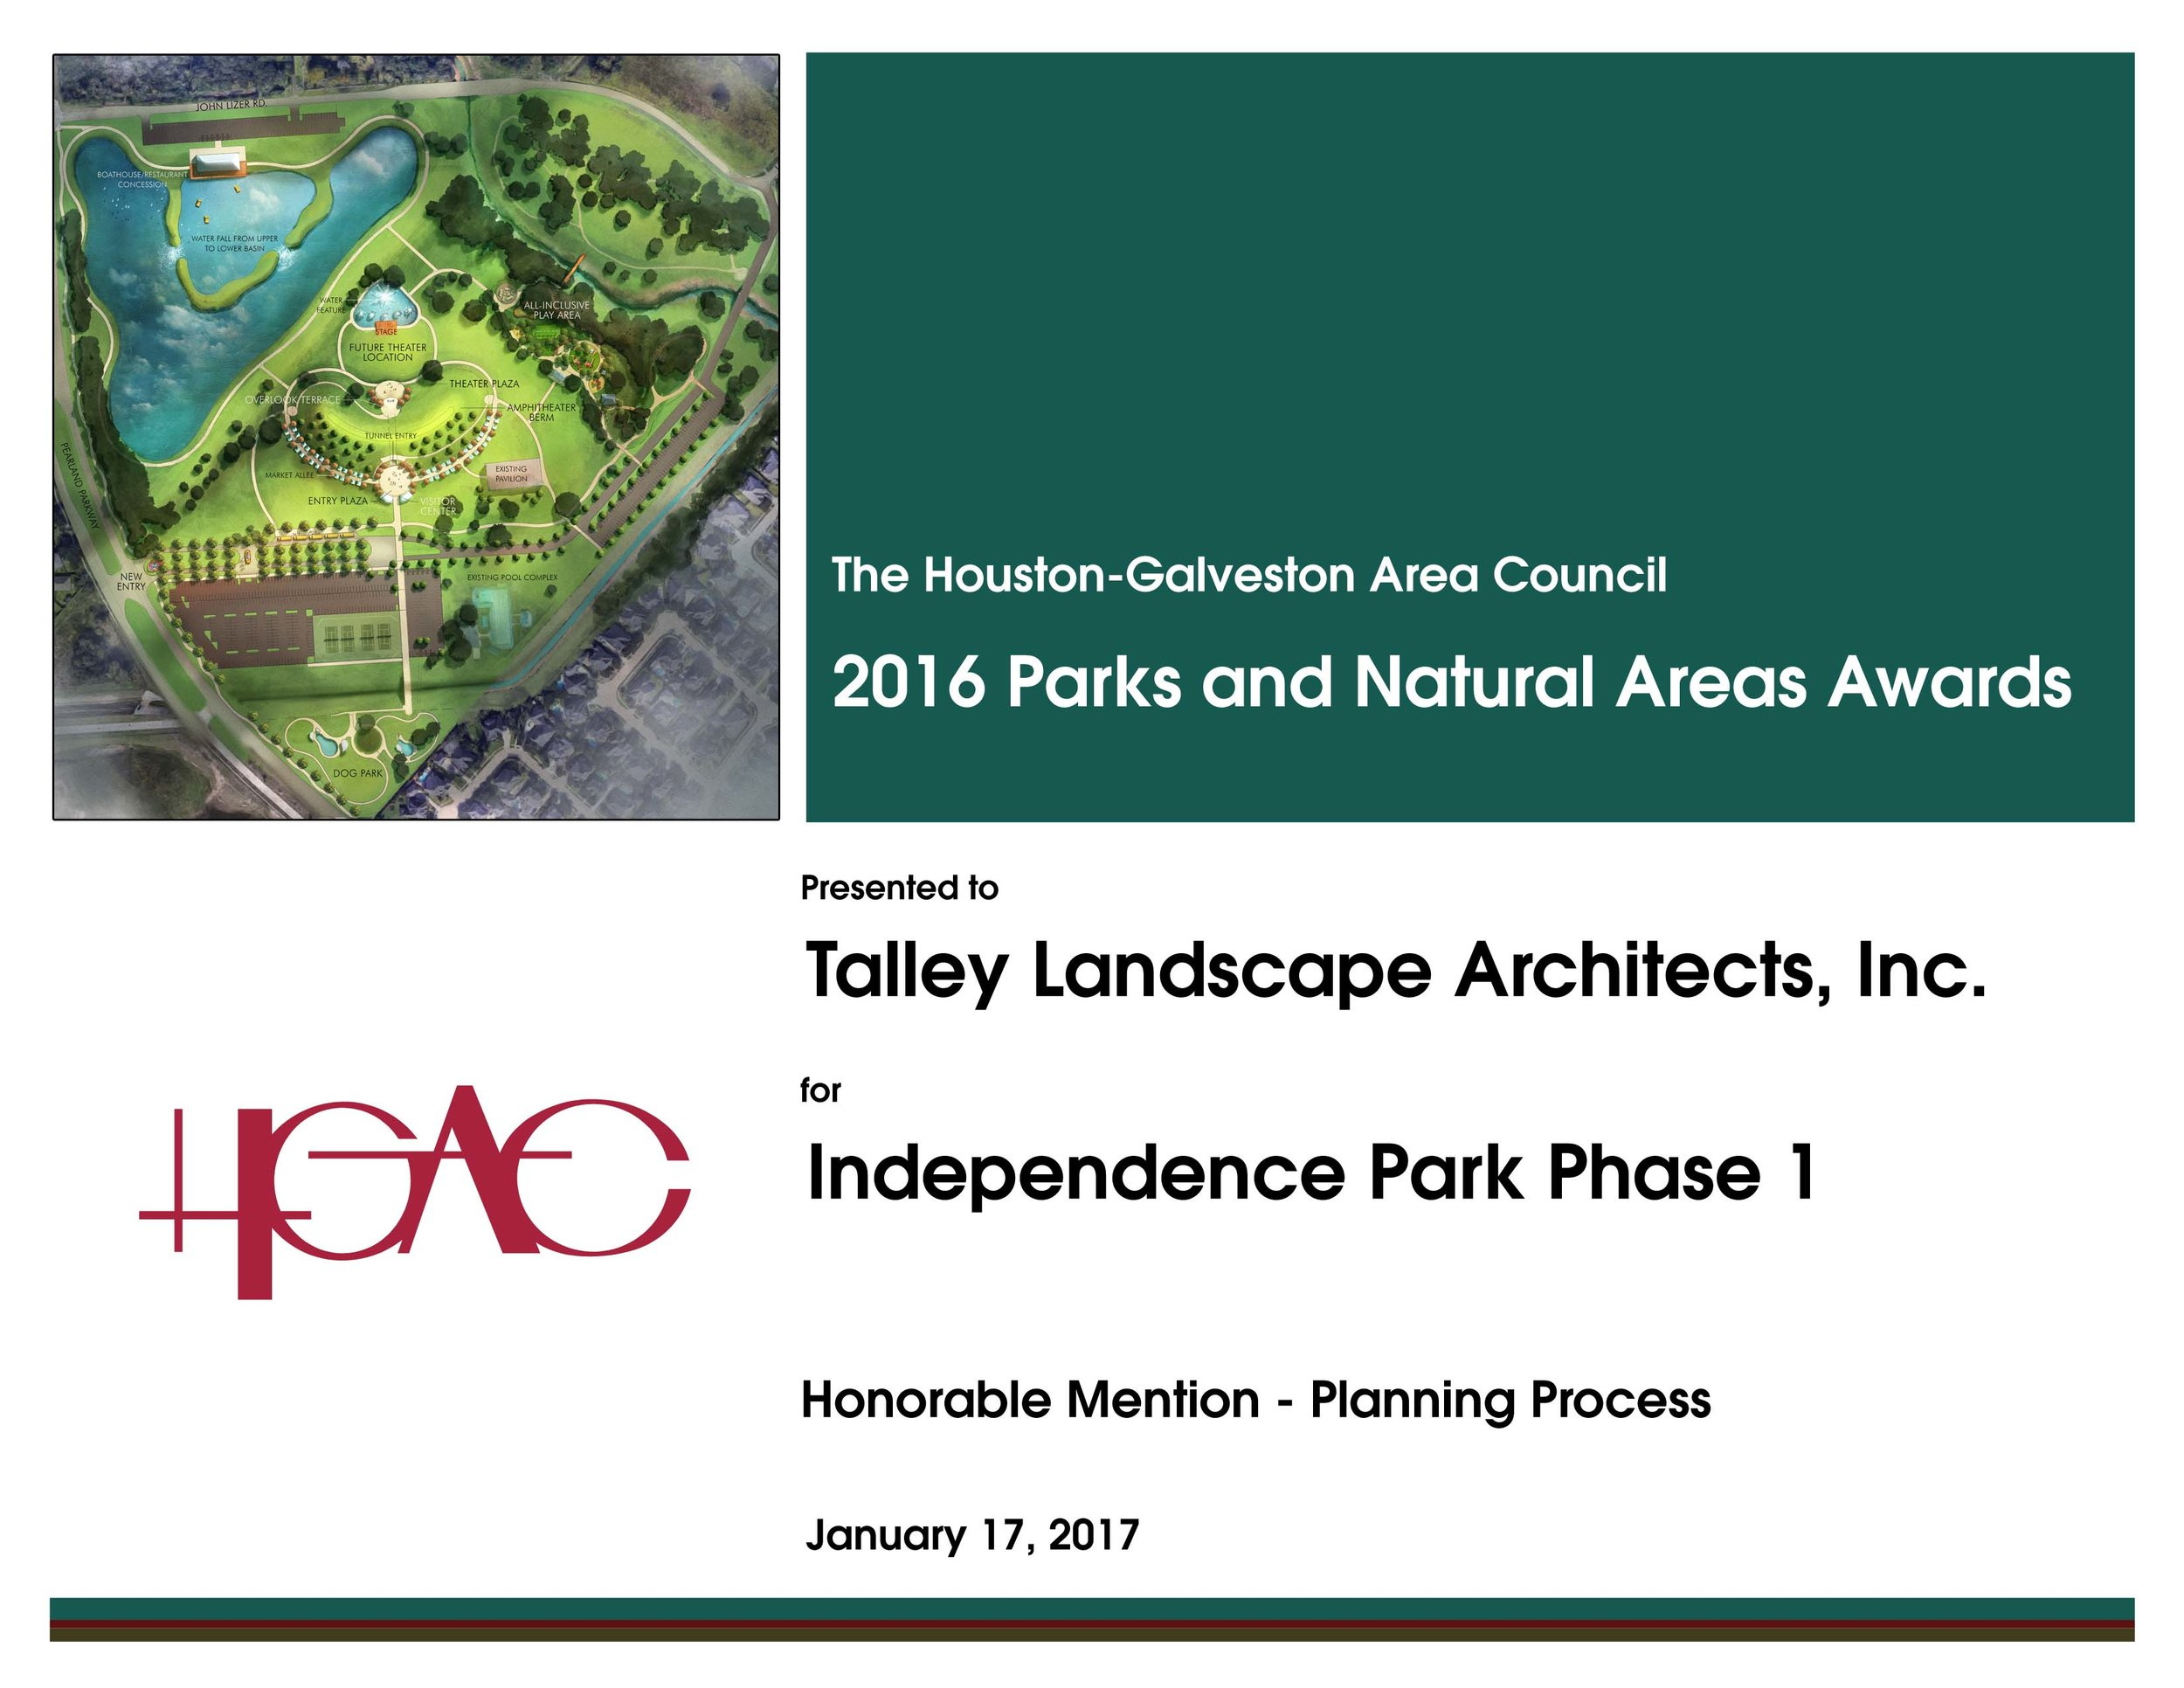 - TLA is happy to announce that City of Pearland's Independence Park won HGAC's Parks and Natural Areas Award for the Planning Process of the Project. Thank you Houston-Galveston Area Council